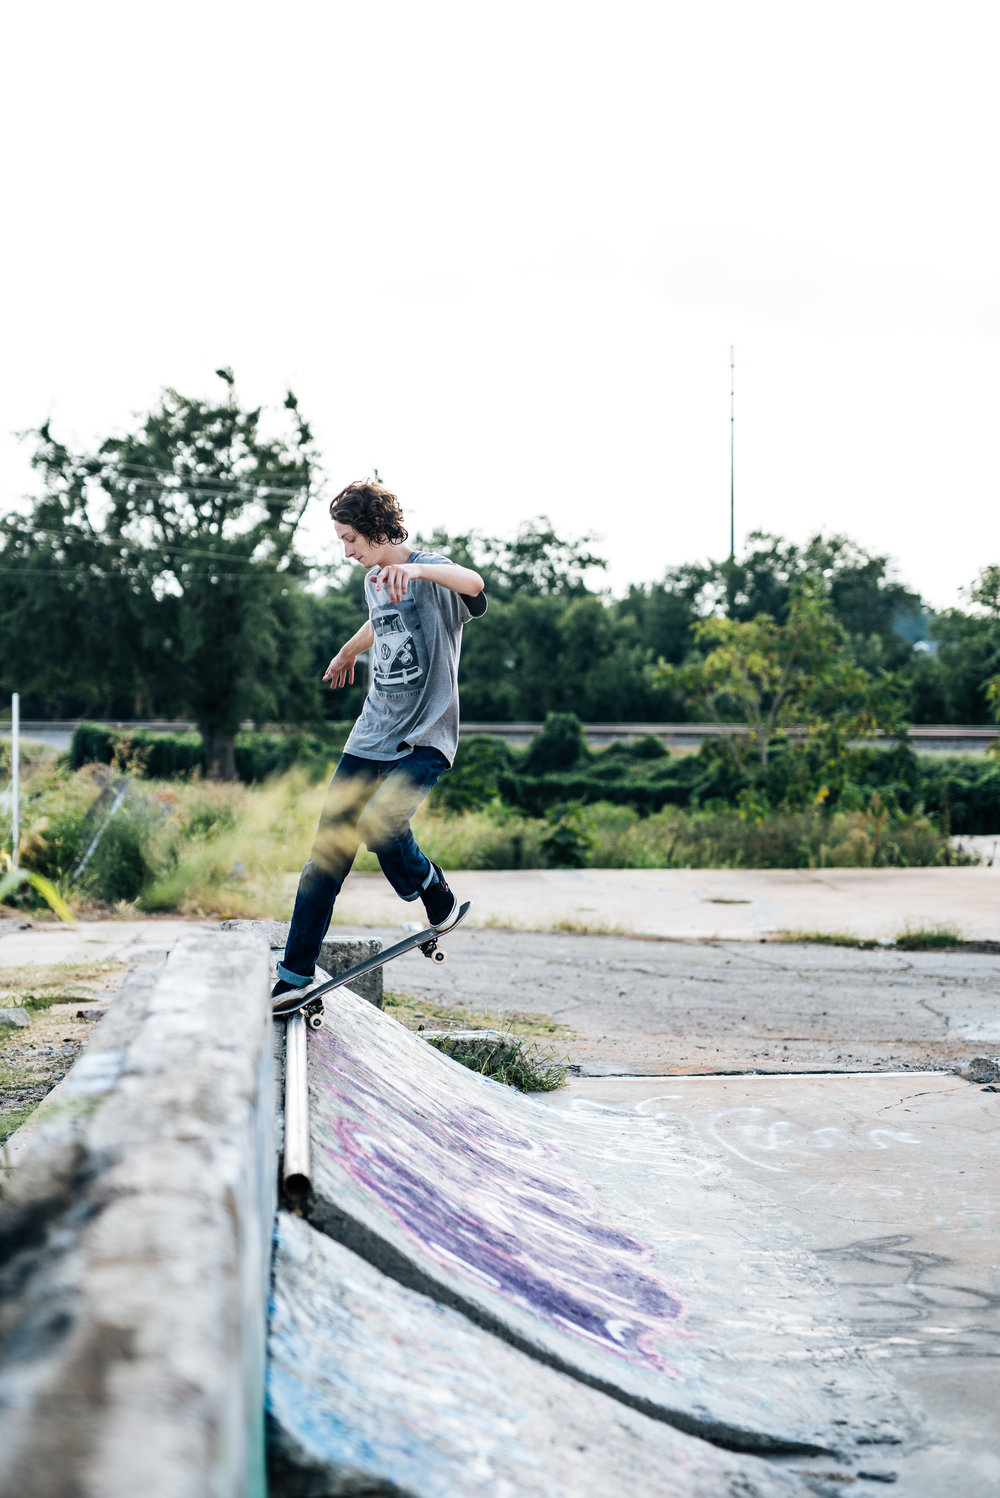 0923.SkateboardingPoeMill.WillCrooks21.WillCrooks.jpg